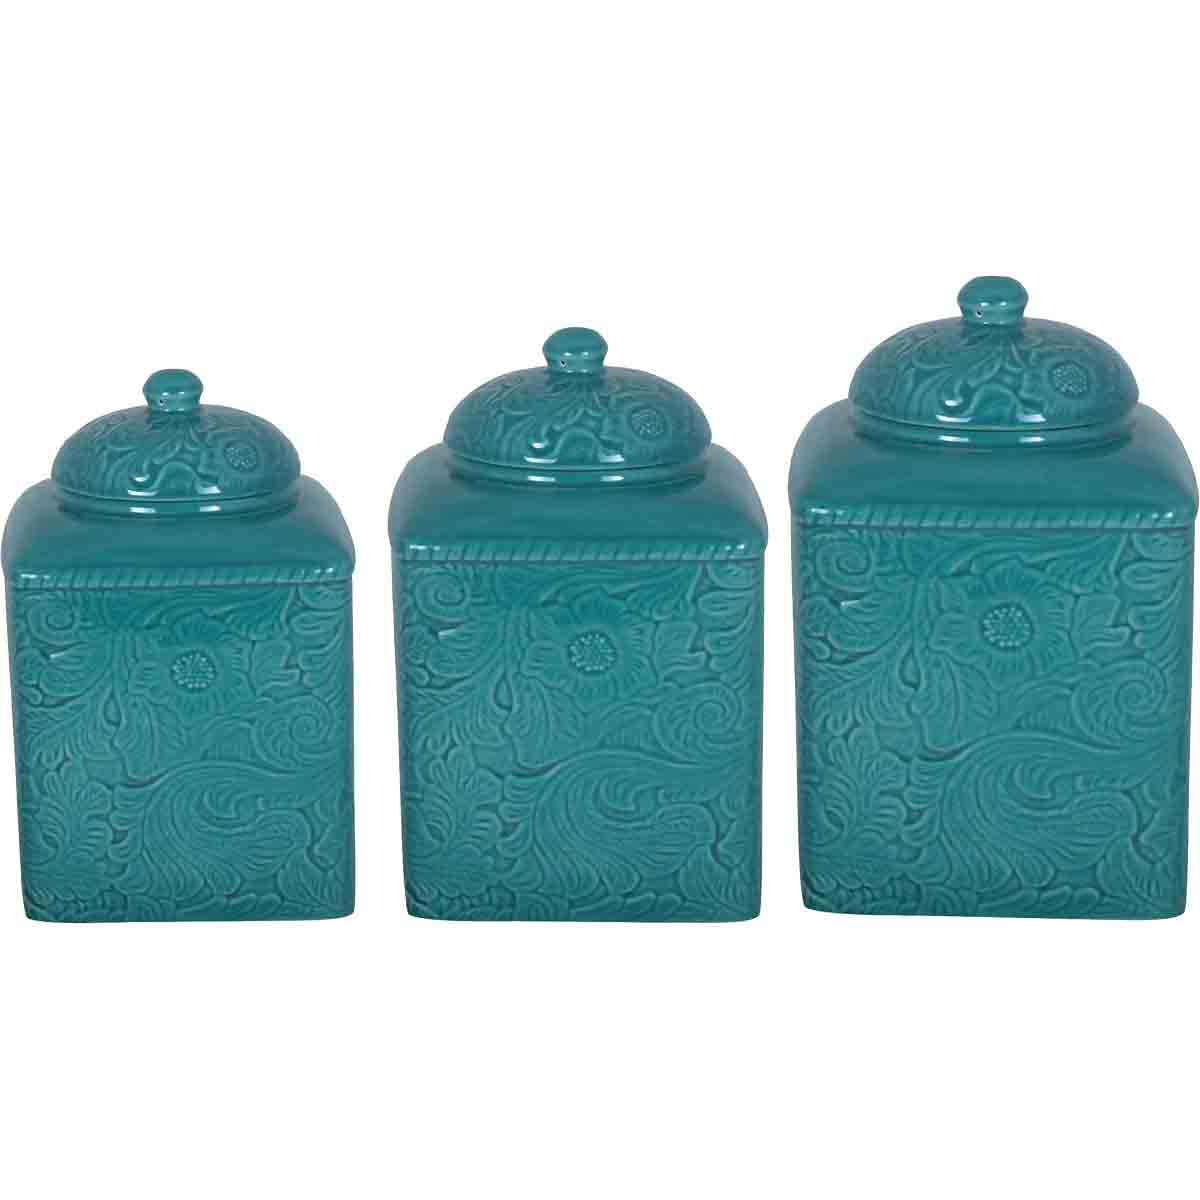 Savannah Turquoise Canister Set - 3 pcs - OUT OF STOCK UNTIL 3/5/2021